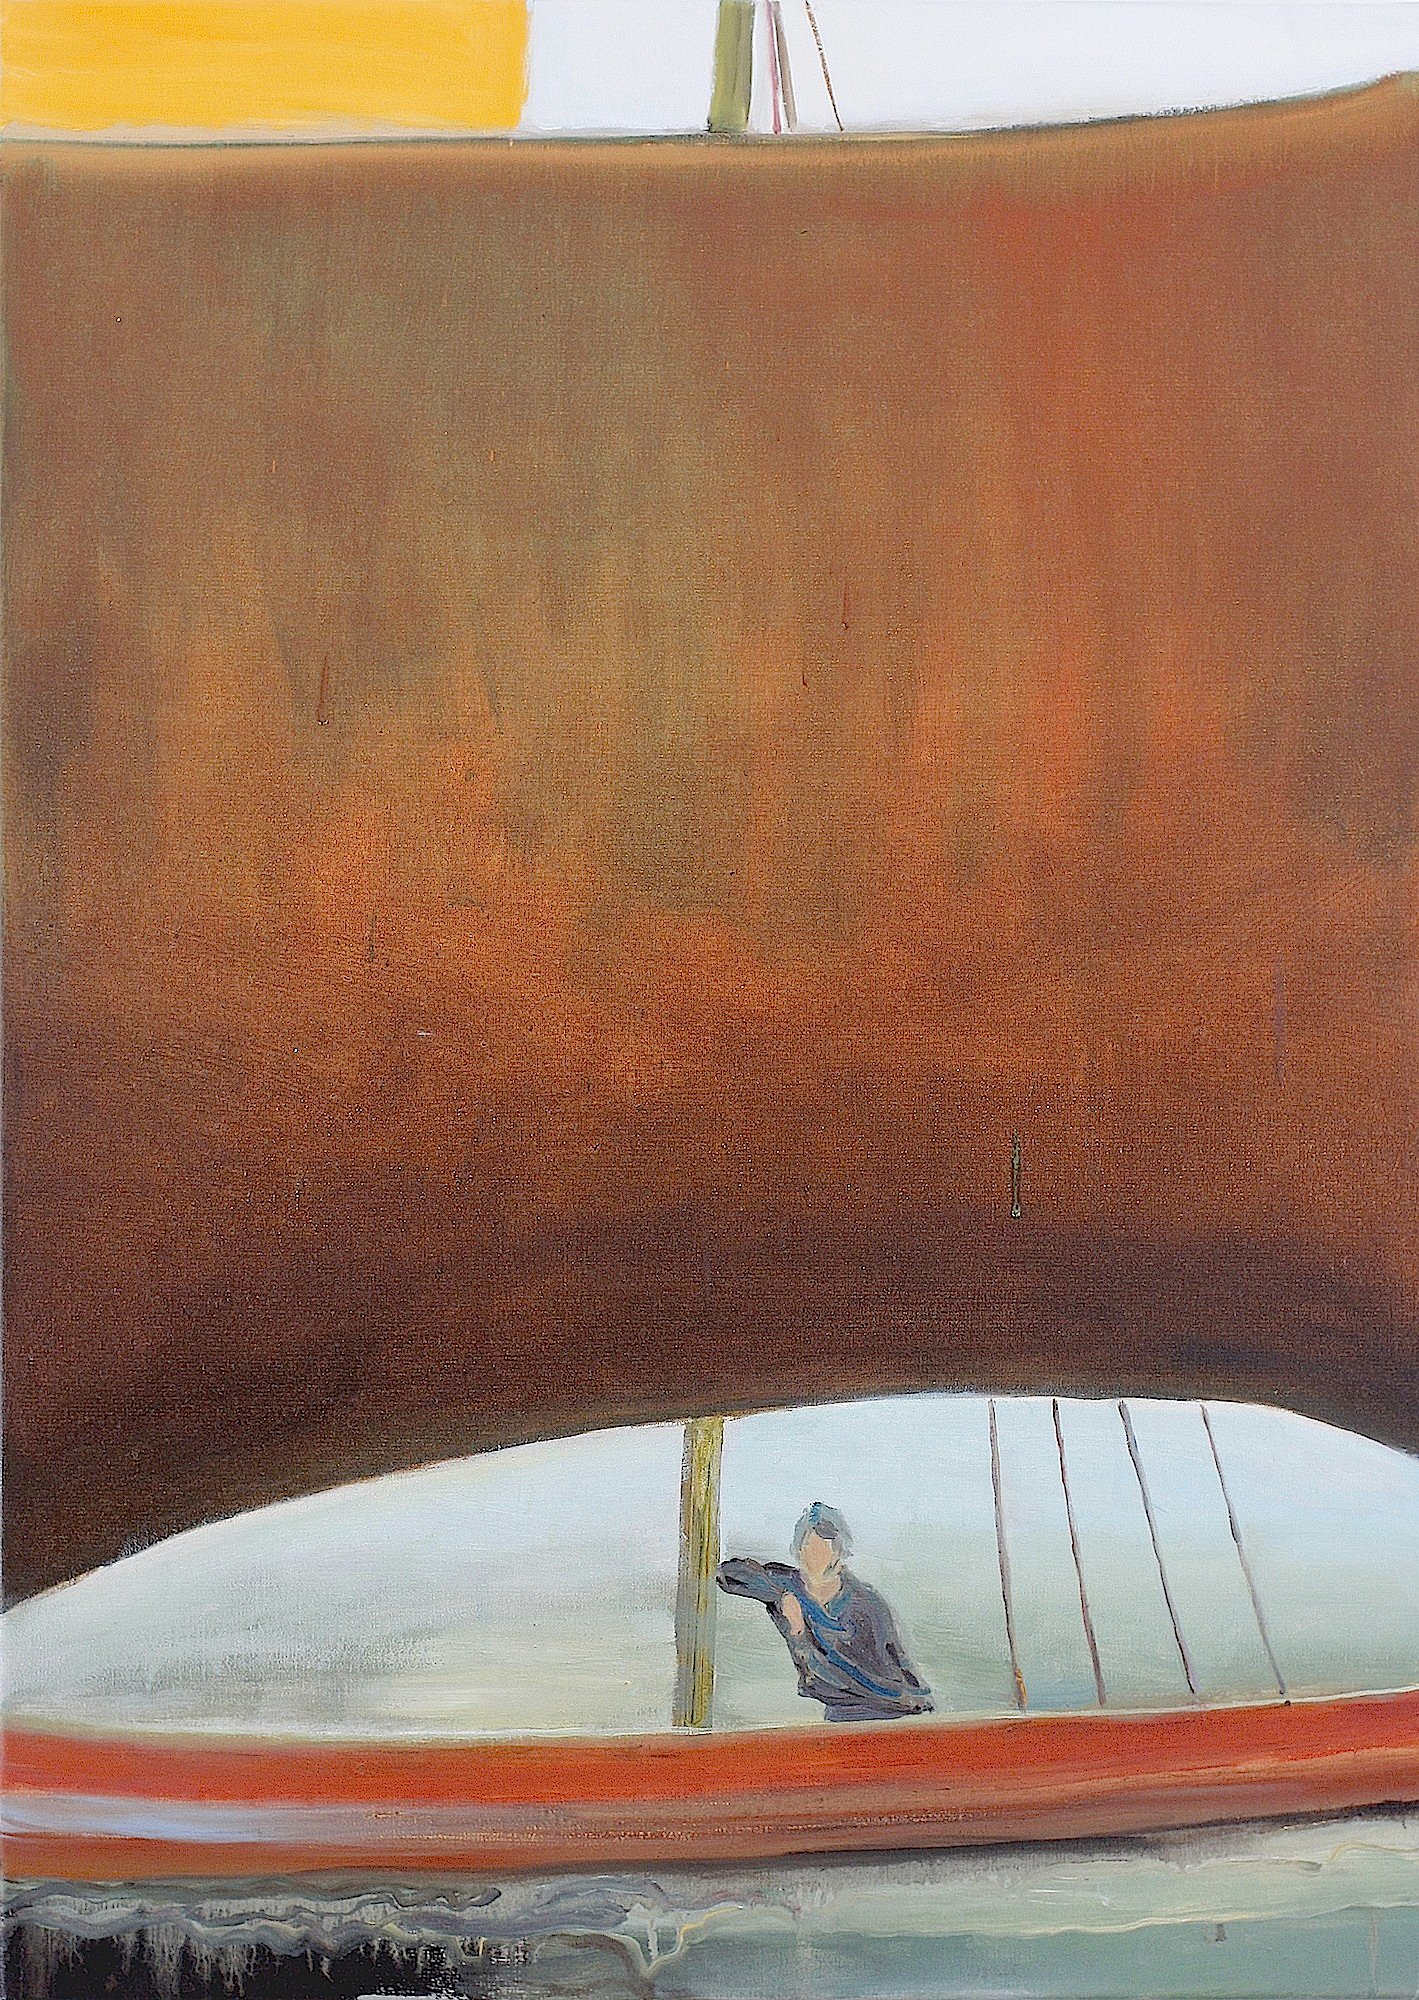 paintings, colorful, figurative, landscape, portraiture, bodies, oceans, people, sailing, transportation, brown, gold, grey, red, cotton-canvas, oil, boats, contemporary-art, danish, decorative, design, expressionism, interior, interior-design, men, modern, modern-art, nordic, scandinavien, ships, vessels, vivid, water, Buy original high quality art. Paintings, drawings, limited edition prints & posters by talented artists.